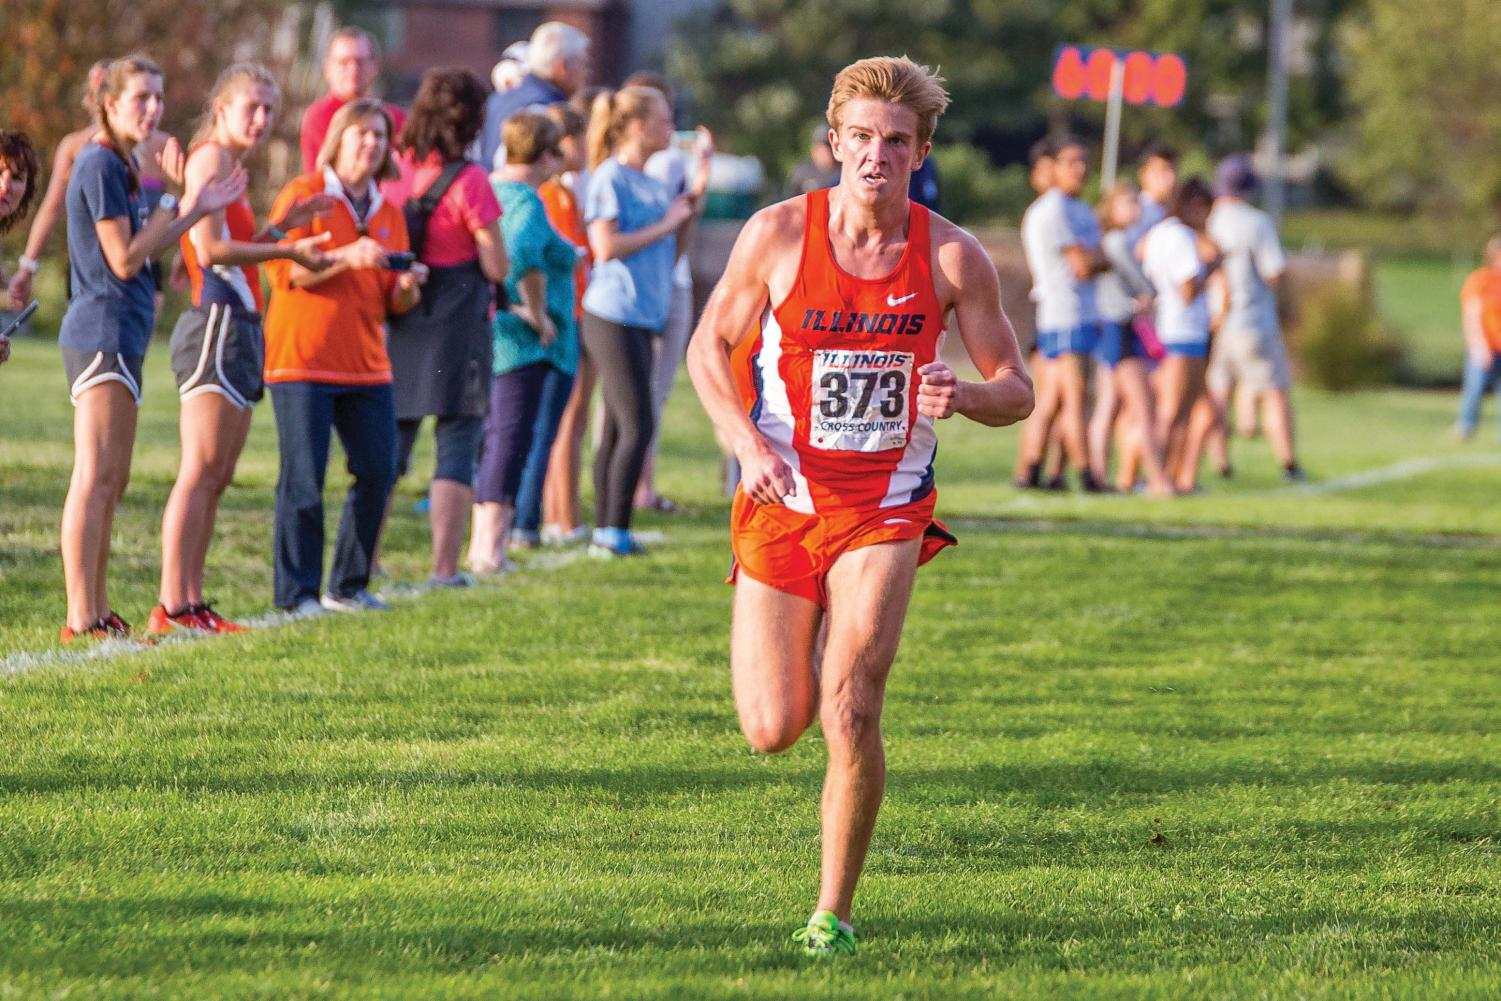 Illinois' Joe Cowlin (373) runs in the Illini Open at the University of Illinois Arboretum on Friday, Oct. 20. Cowlin placed twelfth with a time of 26:49.4 in the men's 8K.